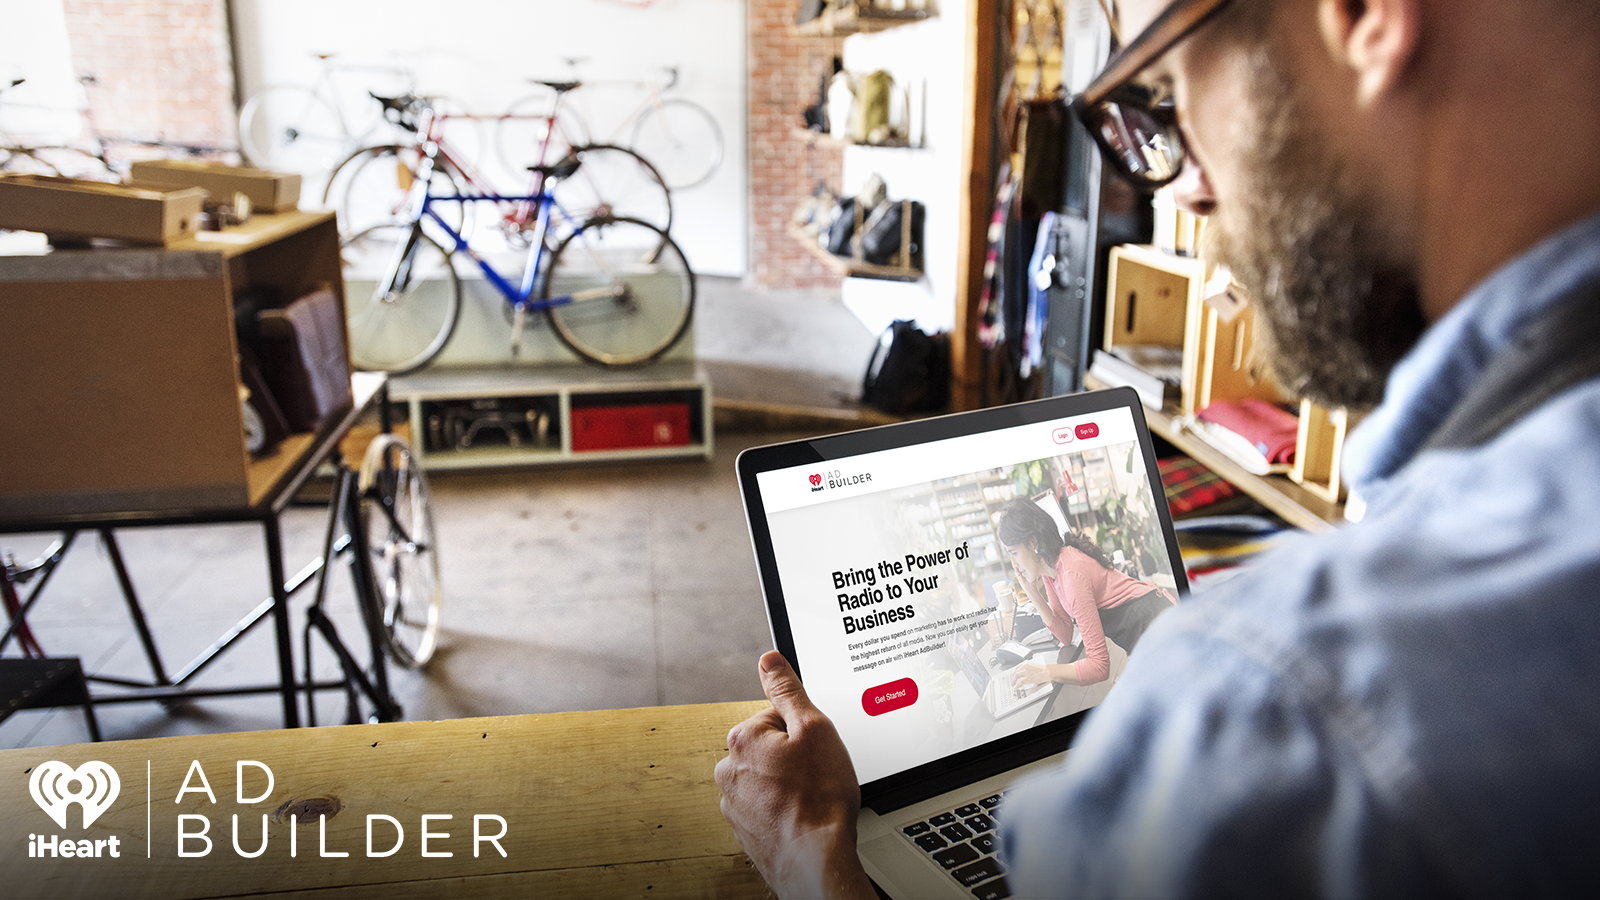 Bike shop owner using iHeart AdBuilder on a laptop